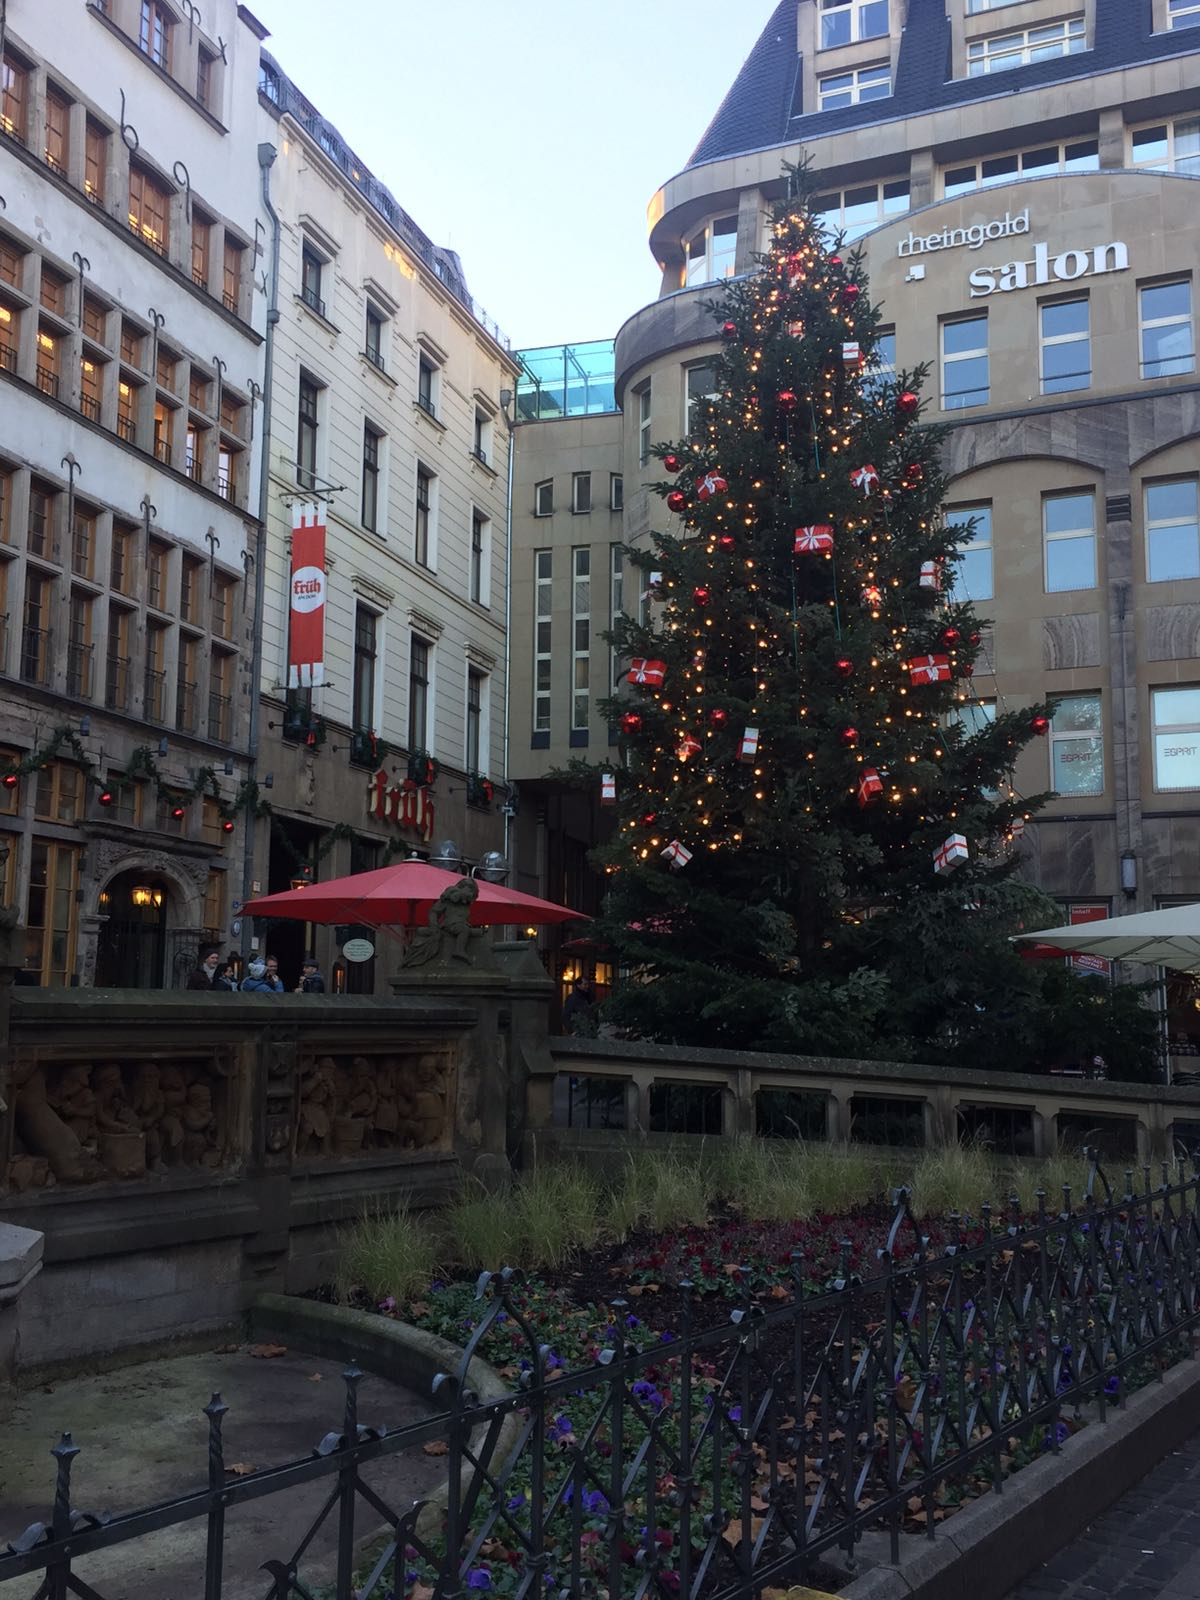 Koln Germany. Köln is the German word for Cologne. This city is a must see, especially during Christmas time...